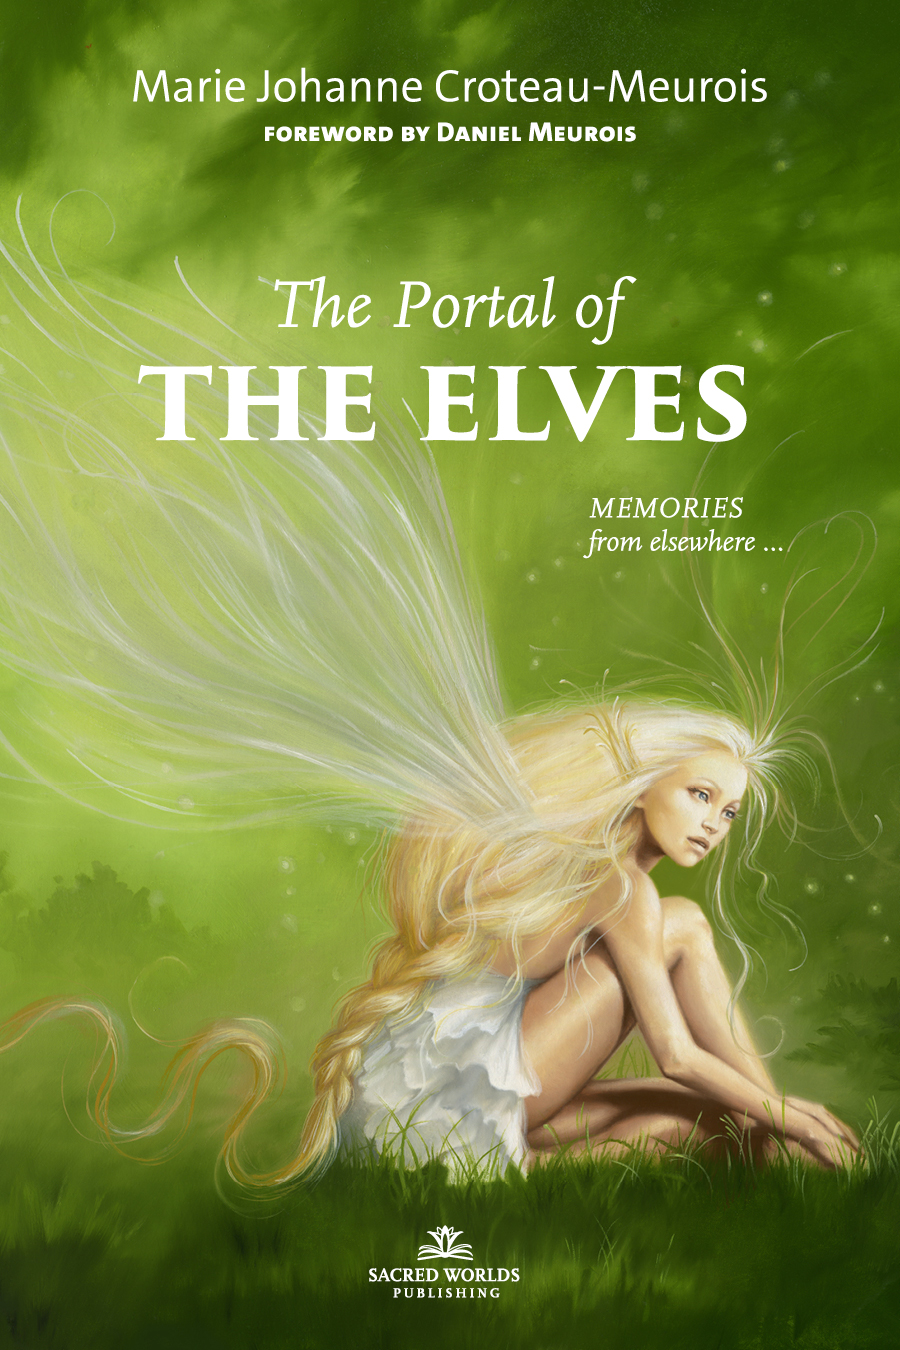 The Portal of the Elves